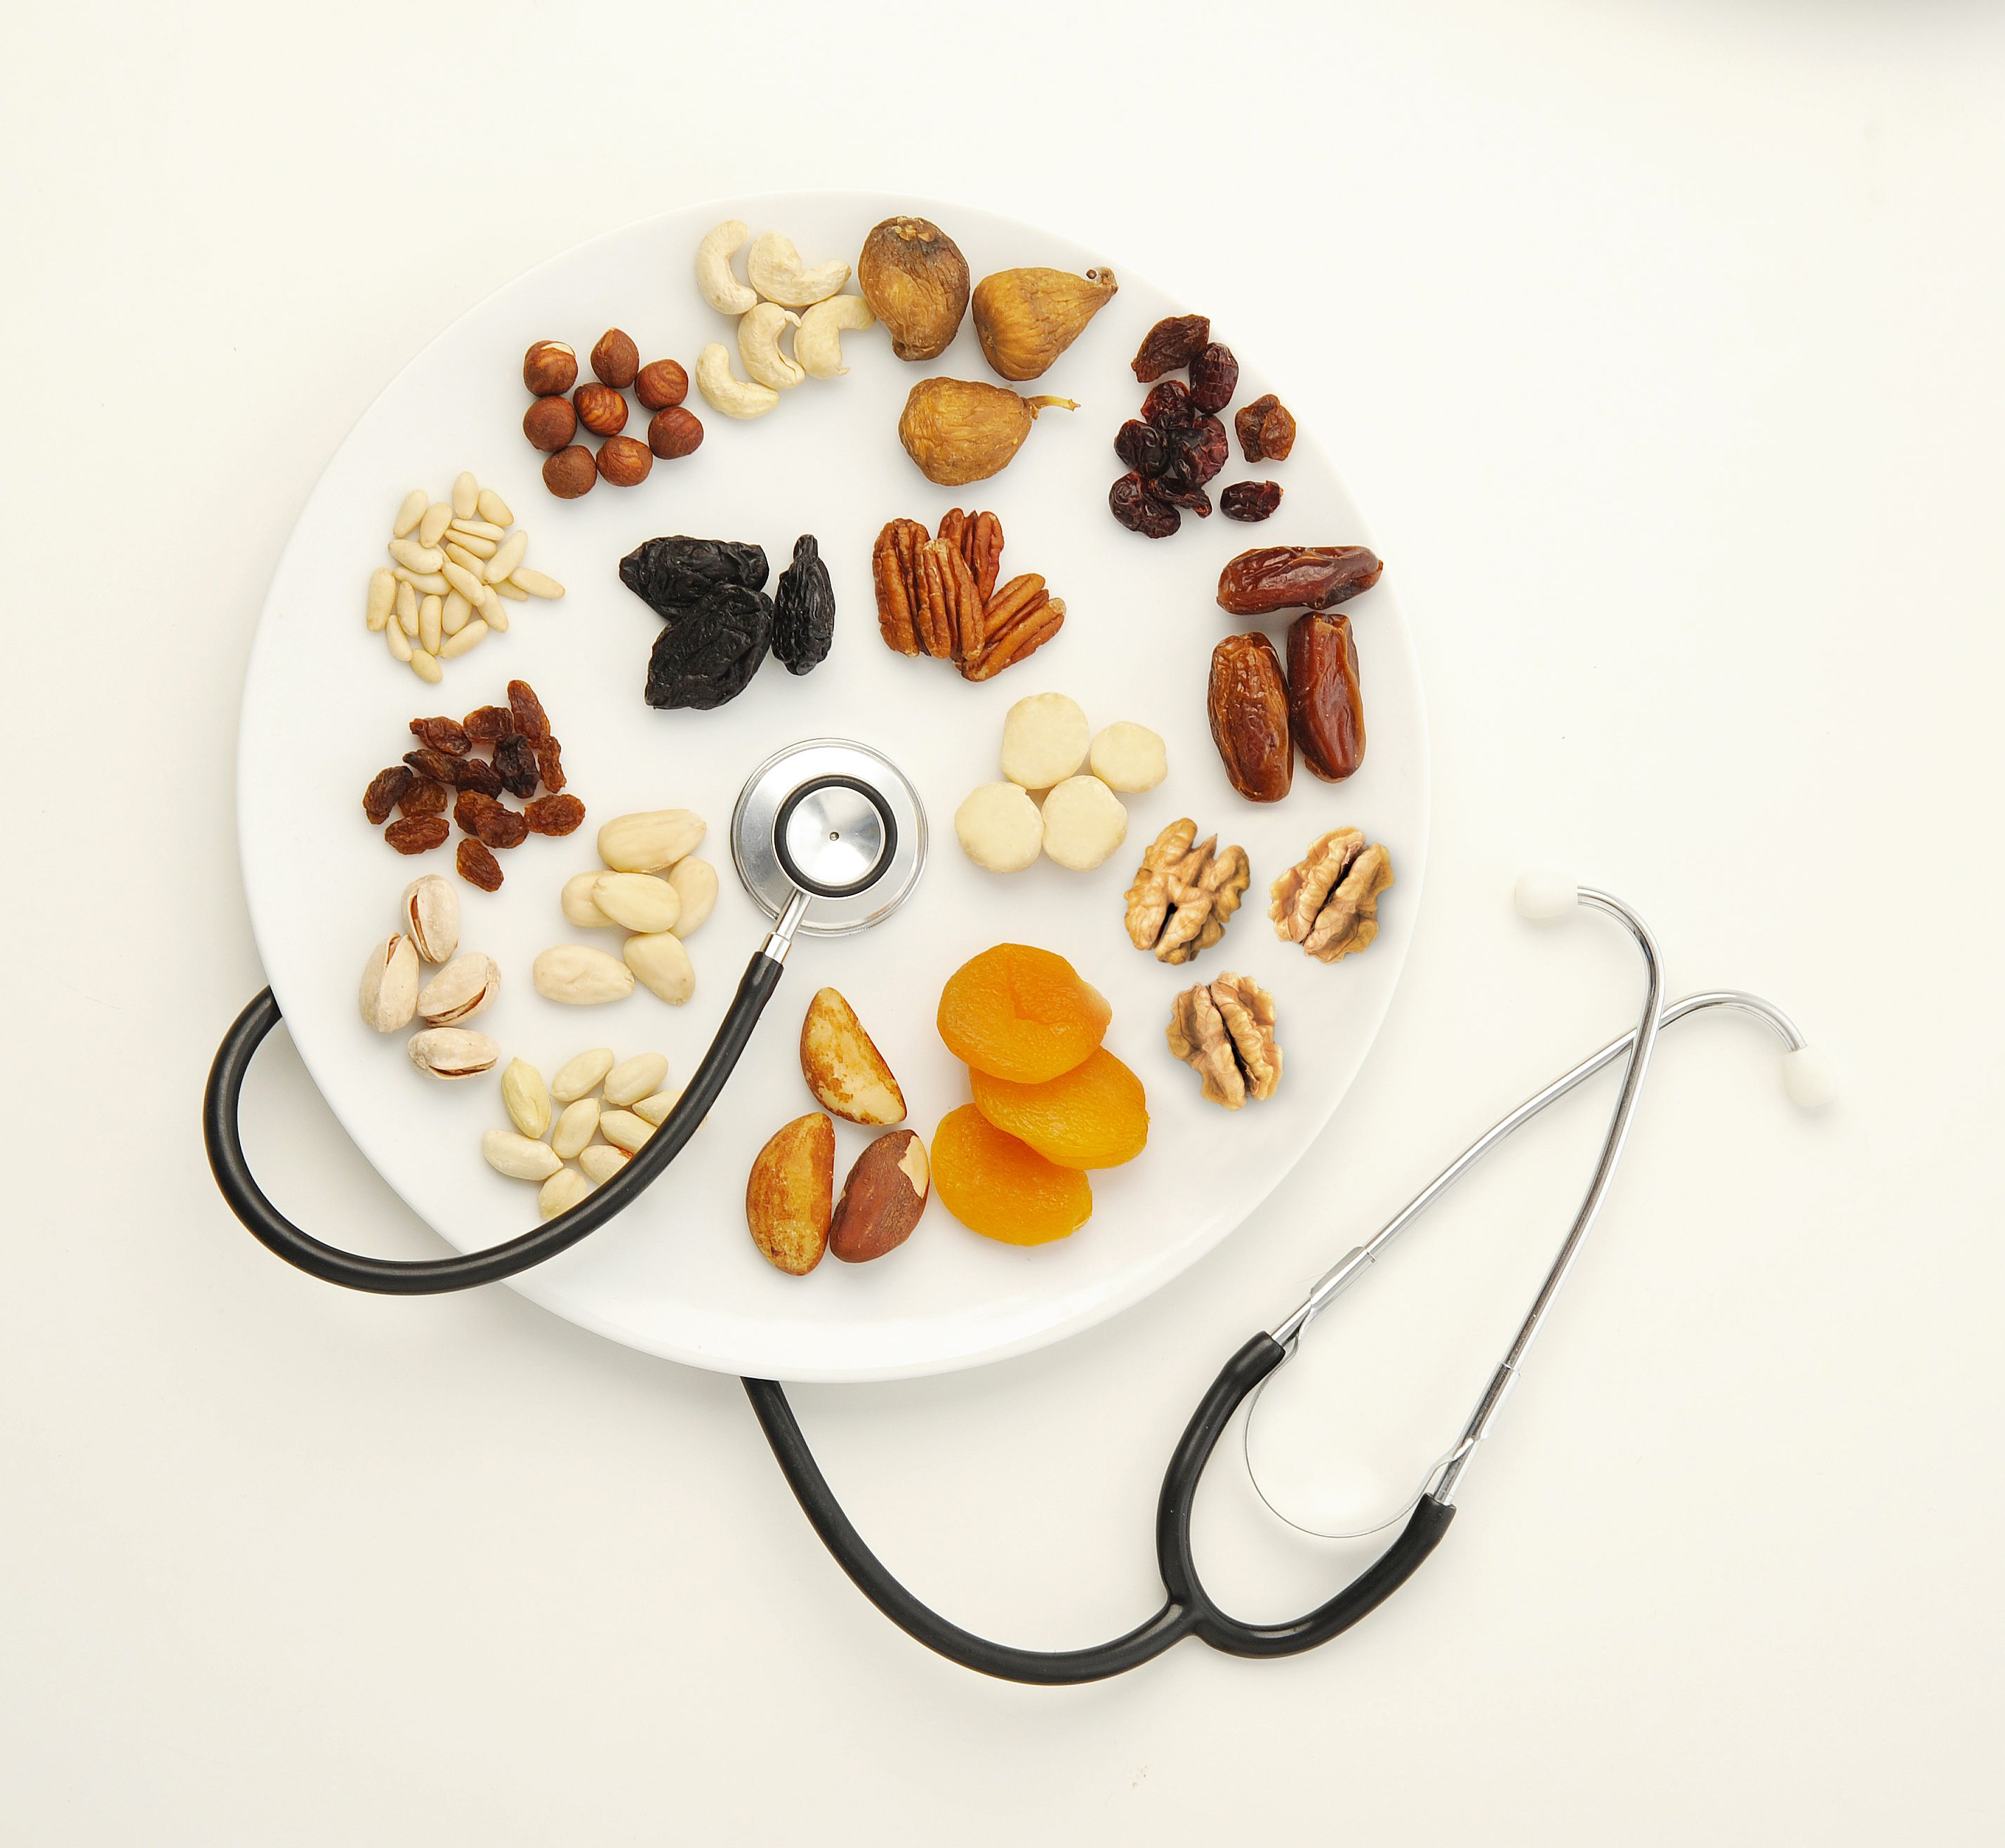 Want to Improve Your Intestinal Health? Eat Nuts and Dried Fruits!